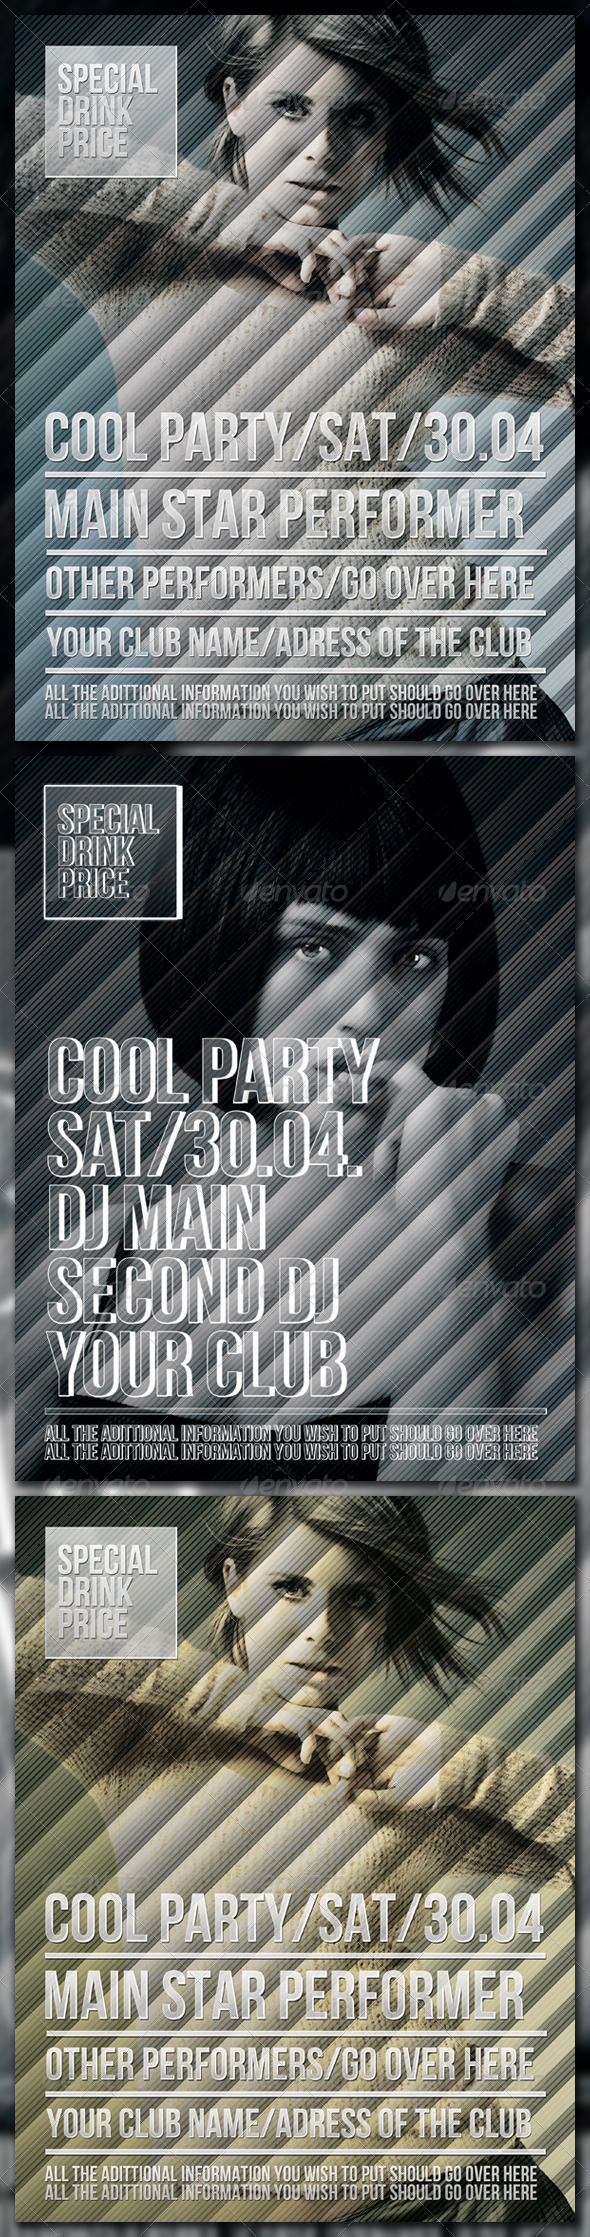 Cool Party Poster - Clubs & Parties Events